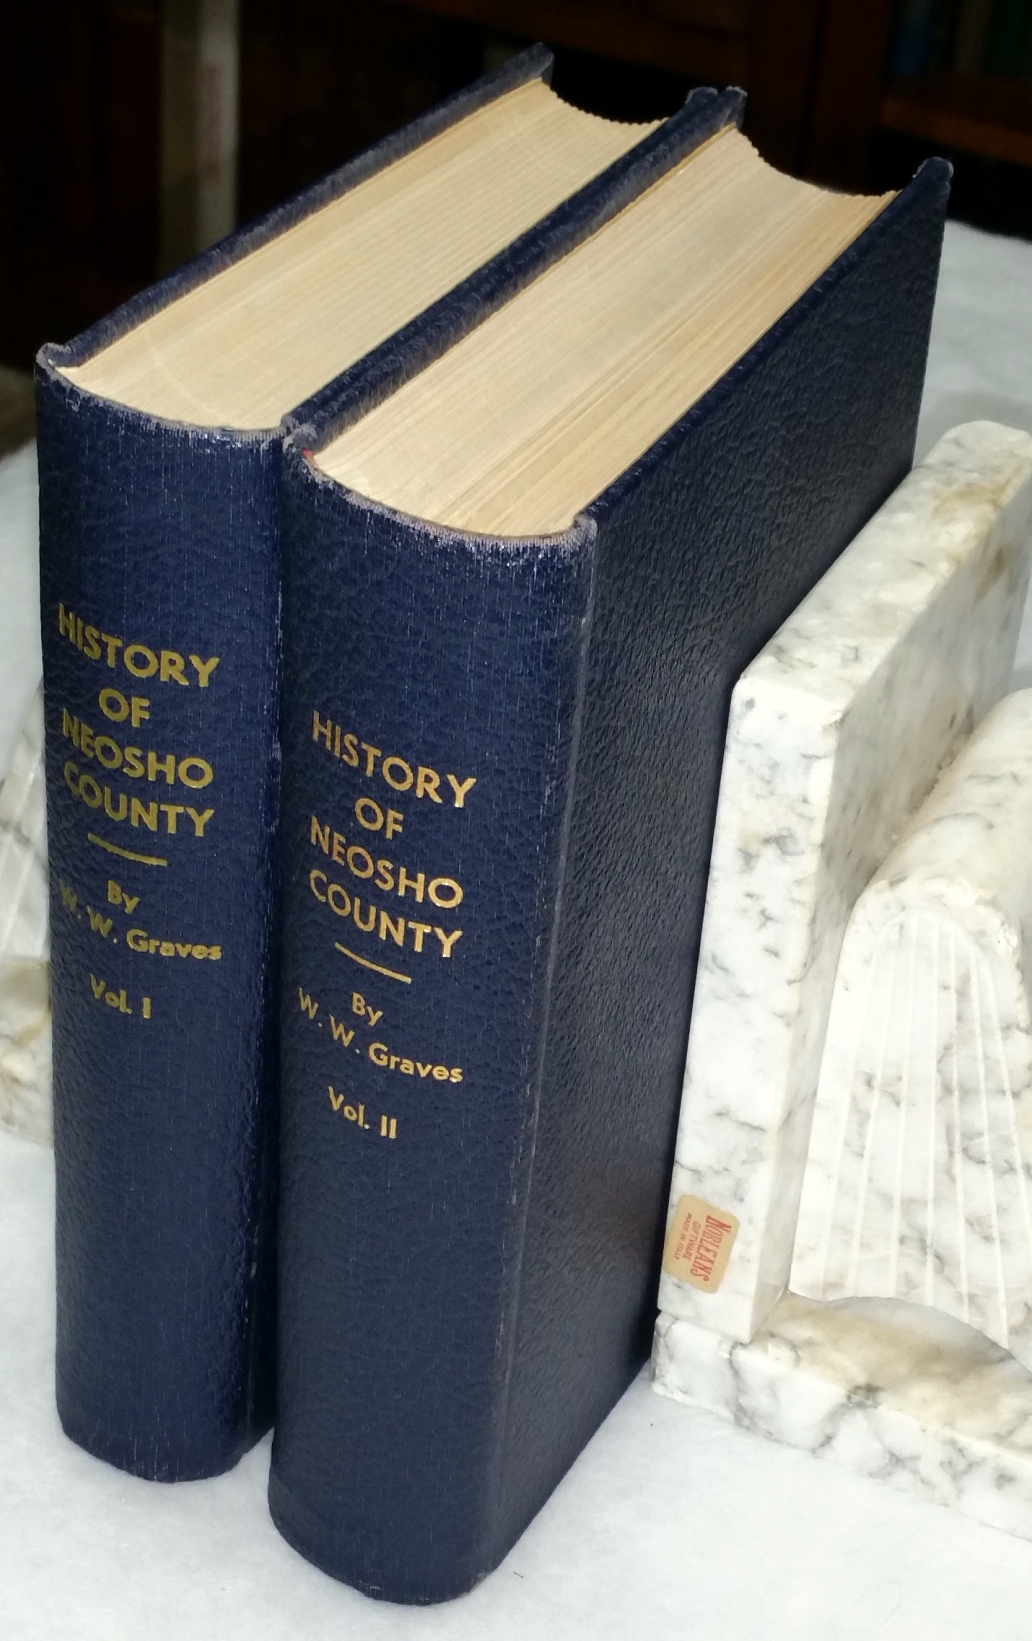 Image for History of Neosho County (Two Volumes)